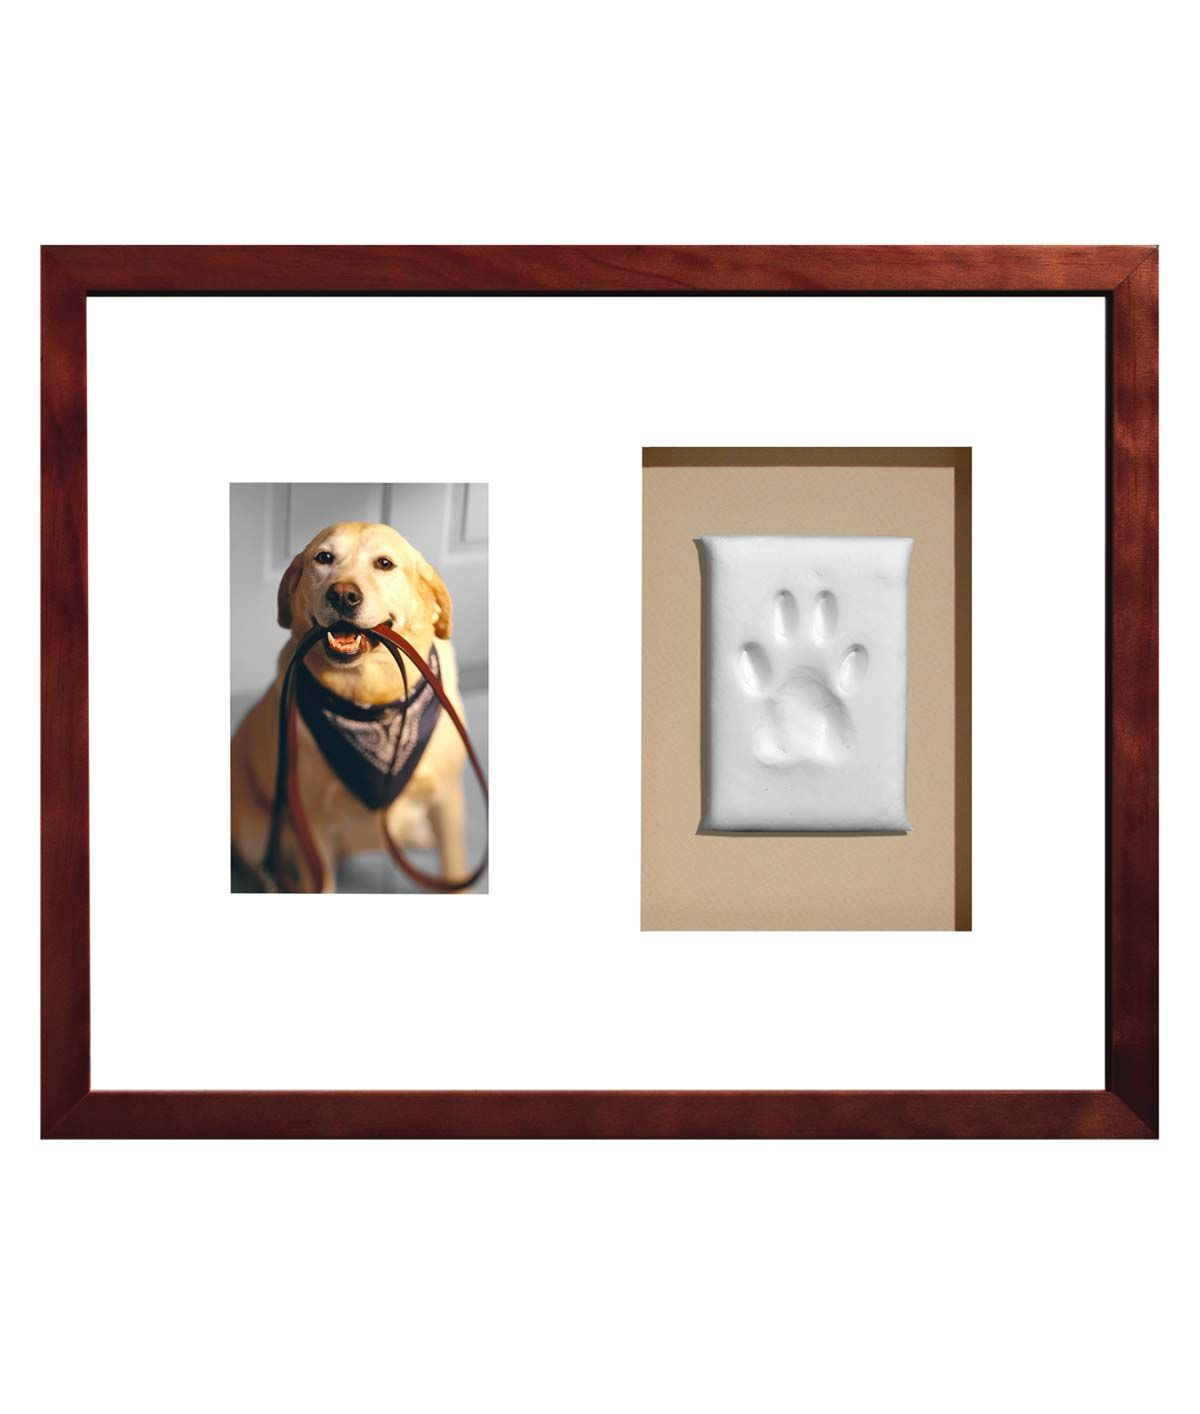 50 Games To Play With Your Cat | Dog picture frames, Dog pictures ...